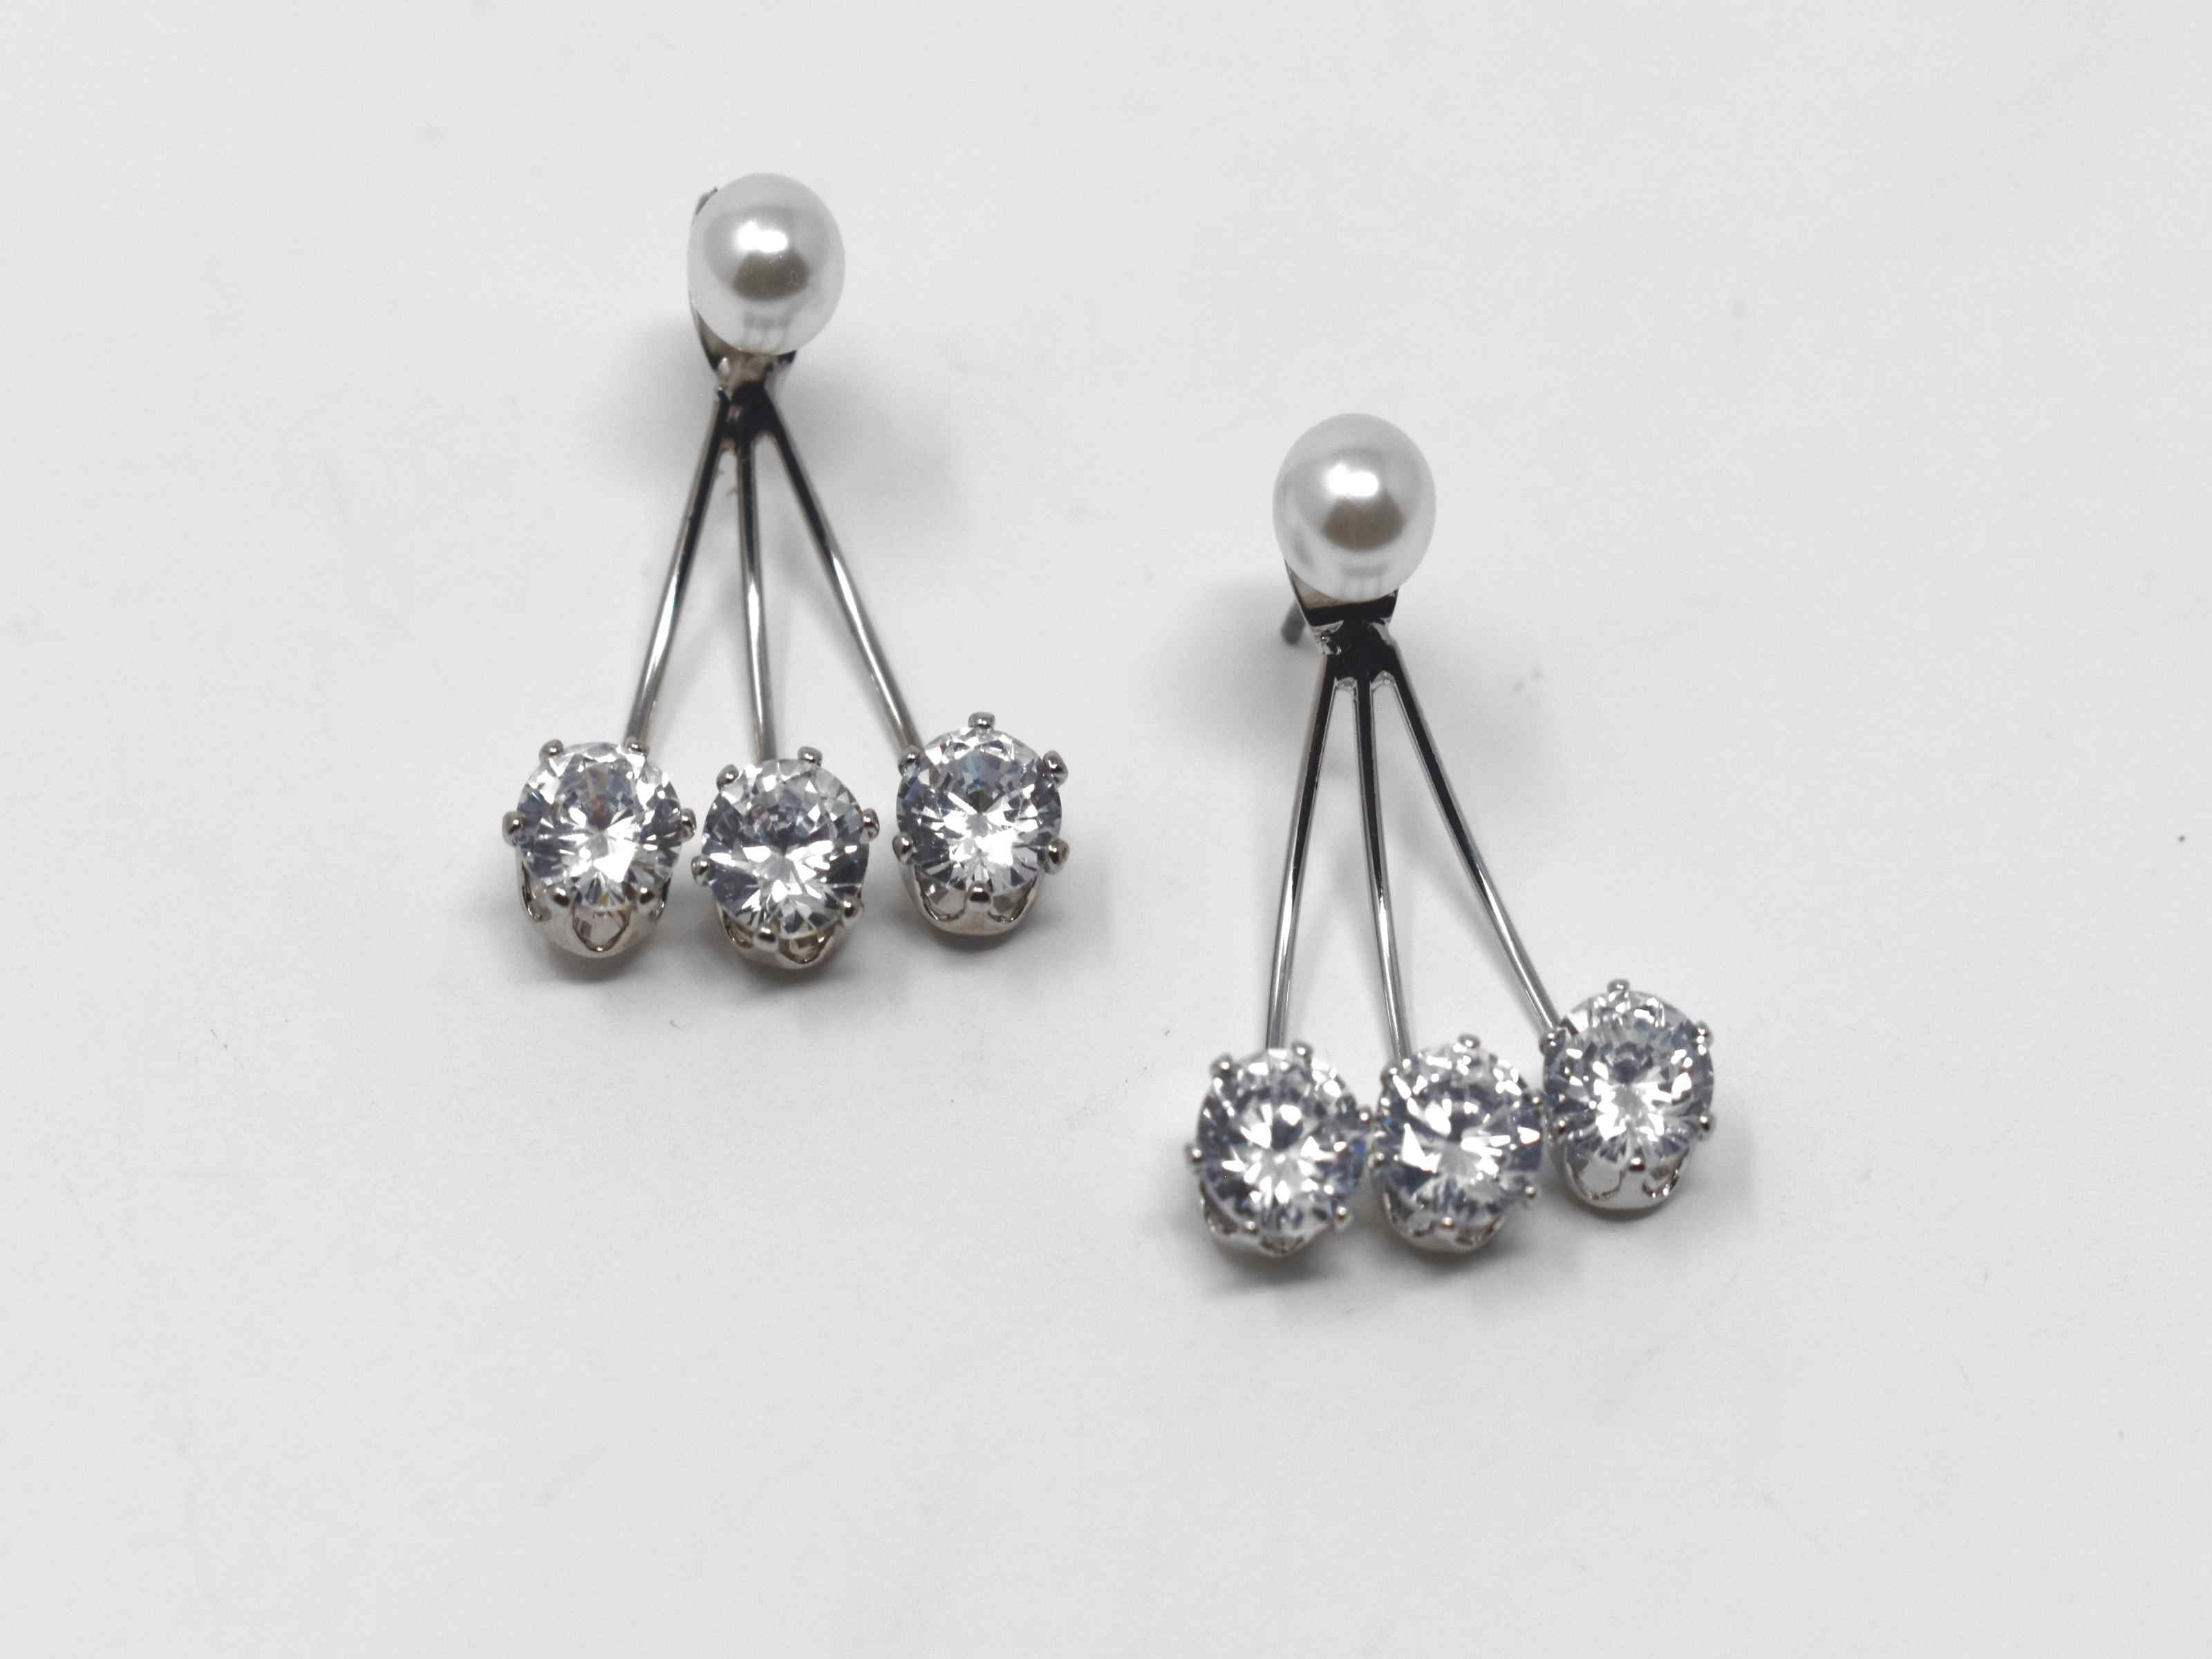 Make a statement with our on trend Erigeron earrings. These silver chandelier knobs have a pearl core with a cascade of stones. They are 1 inch in length with a push back clasp.